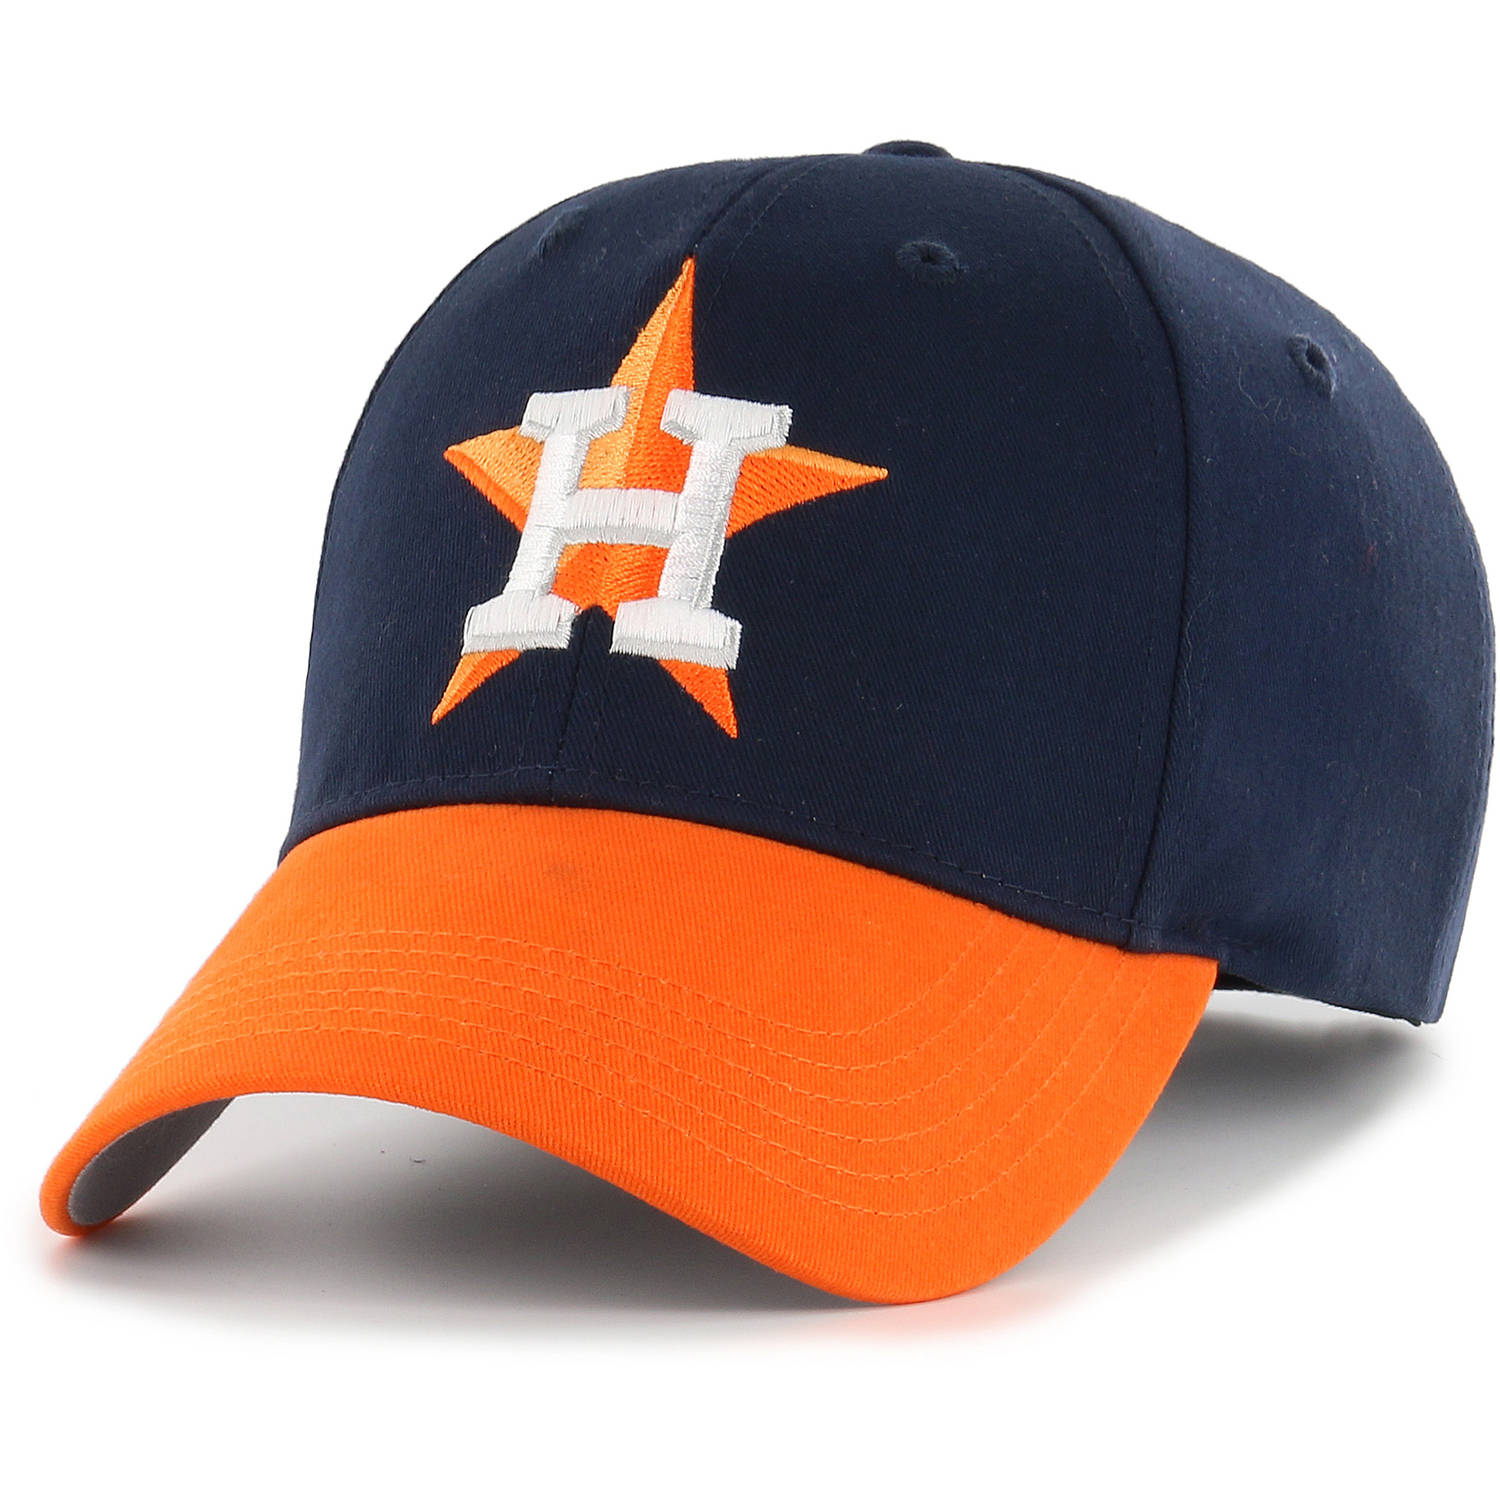 MLB Houston Astros Reverse Basic Adjustable Cap/Hat by Fan Favorite